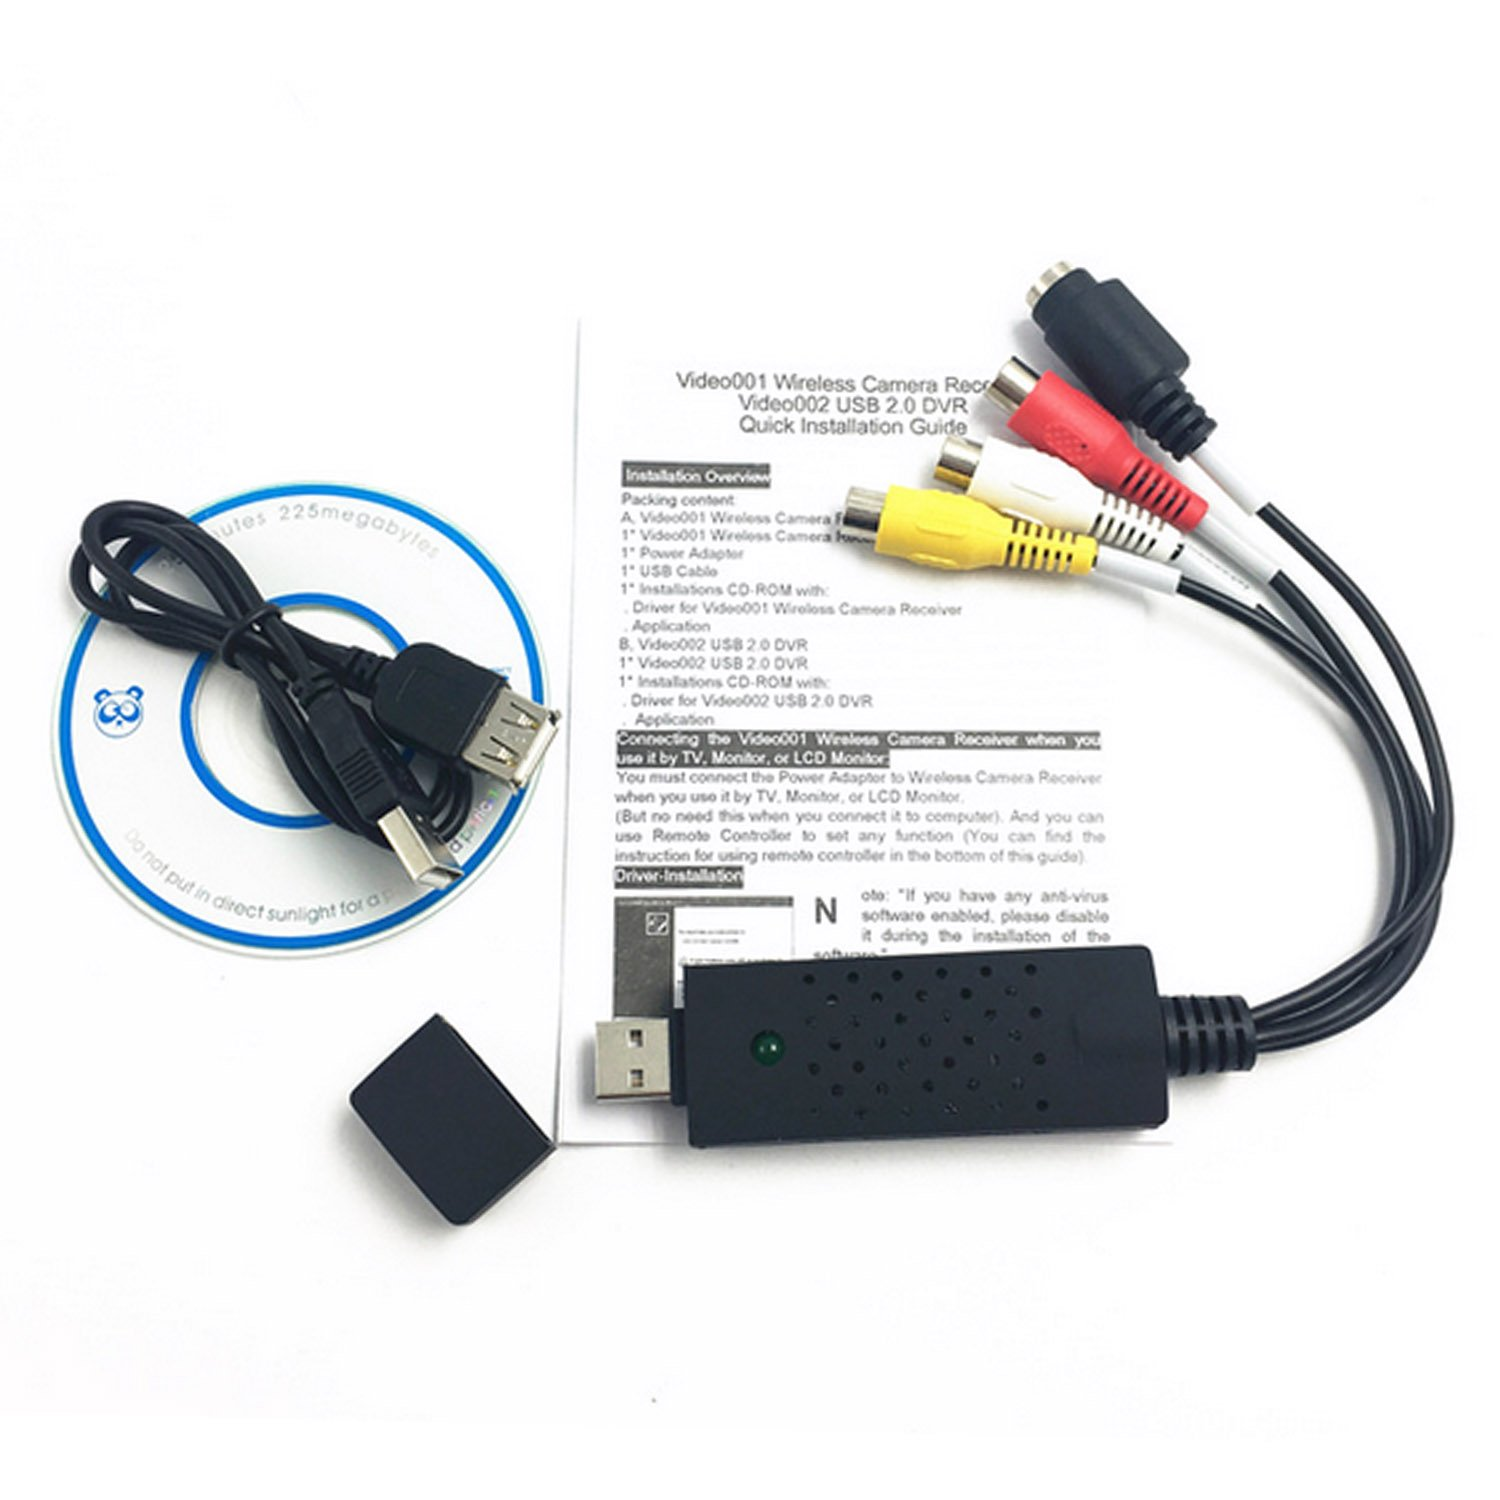 Usb 20 Video Capture Converter Adapter Cable With Audio To Av Rca Easy Dvr 1 Channel Tv Dvd Vhs Card Convertervideo Home